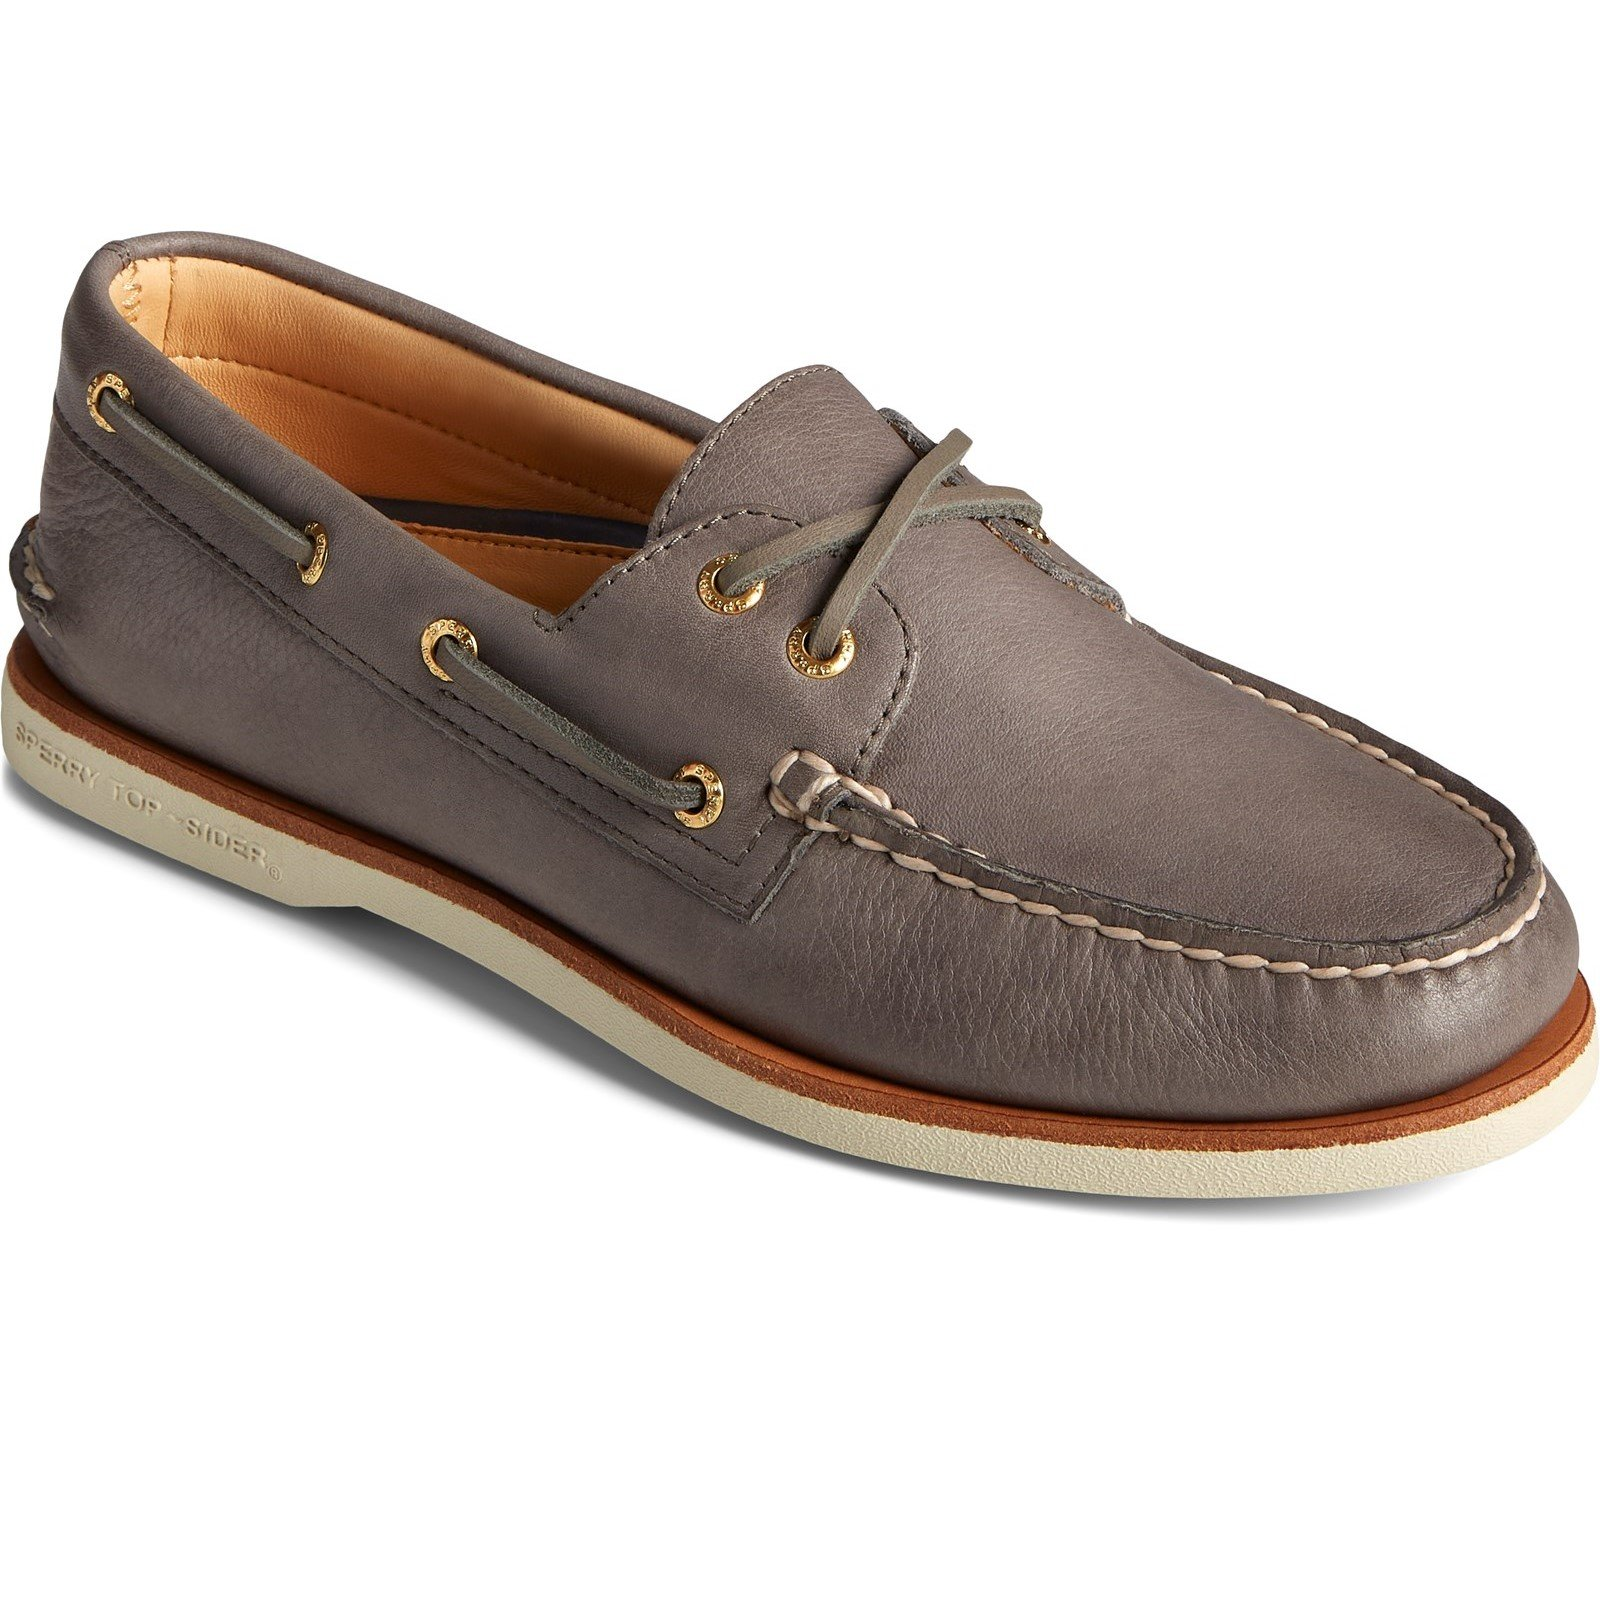 Sperry Men's A/O 2-Eye Boat Shoe Various Colours 32926 - Charcoal 7.5